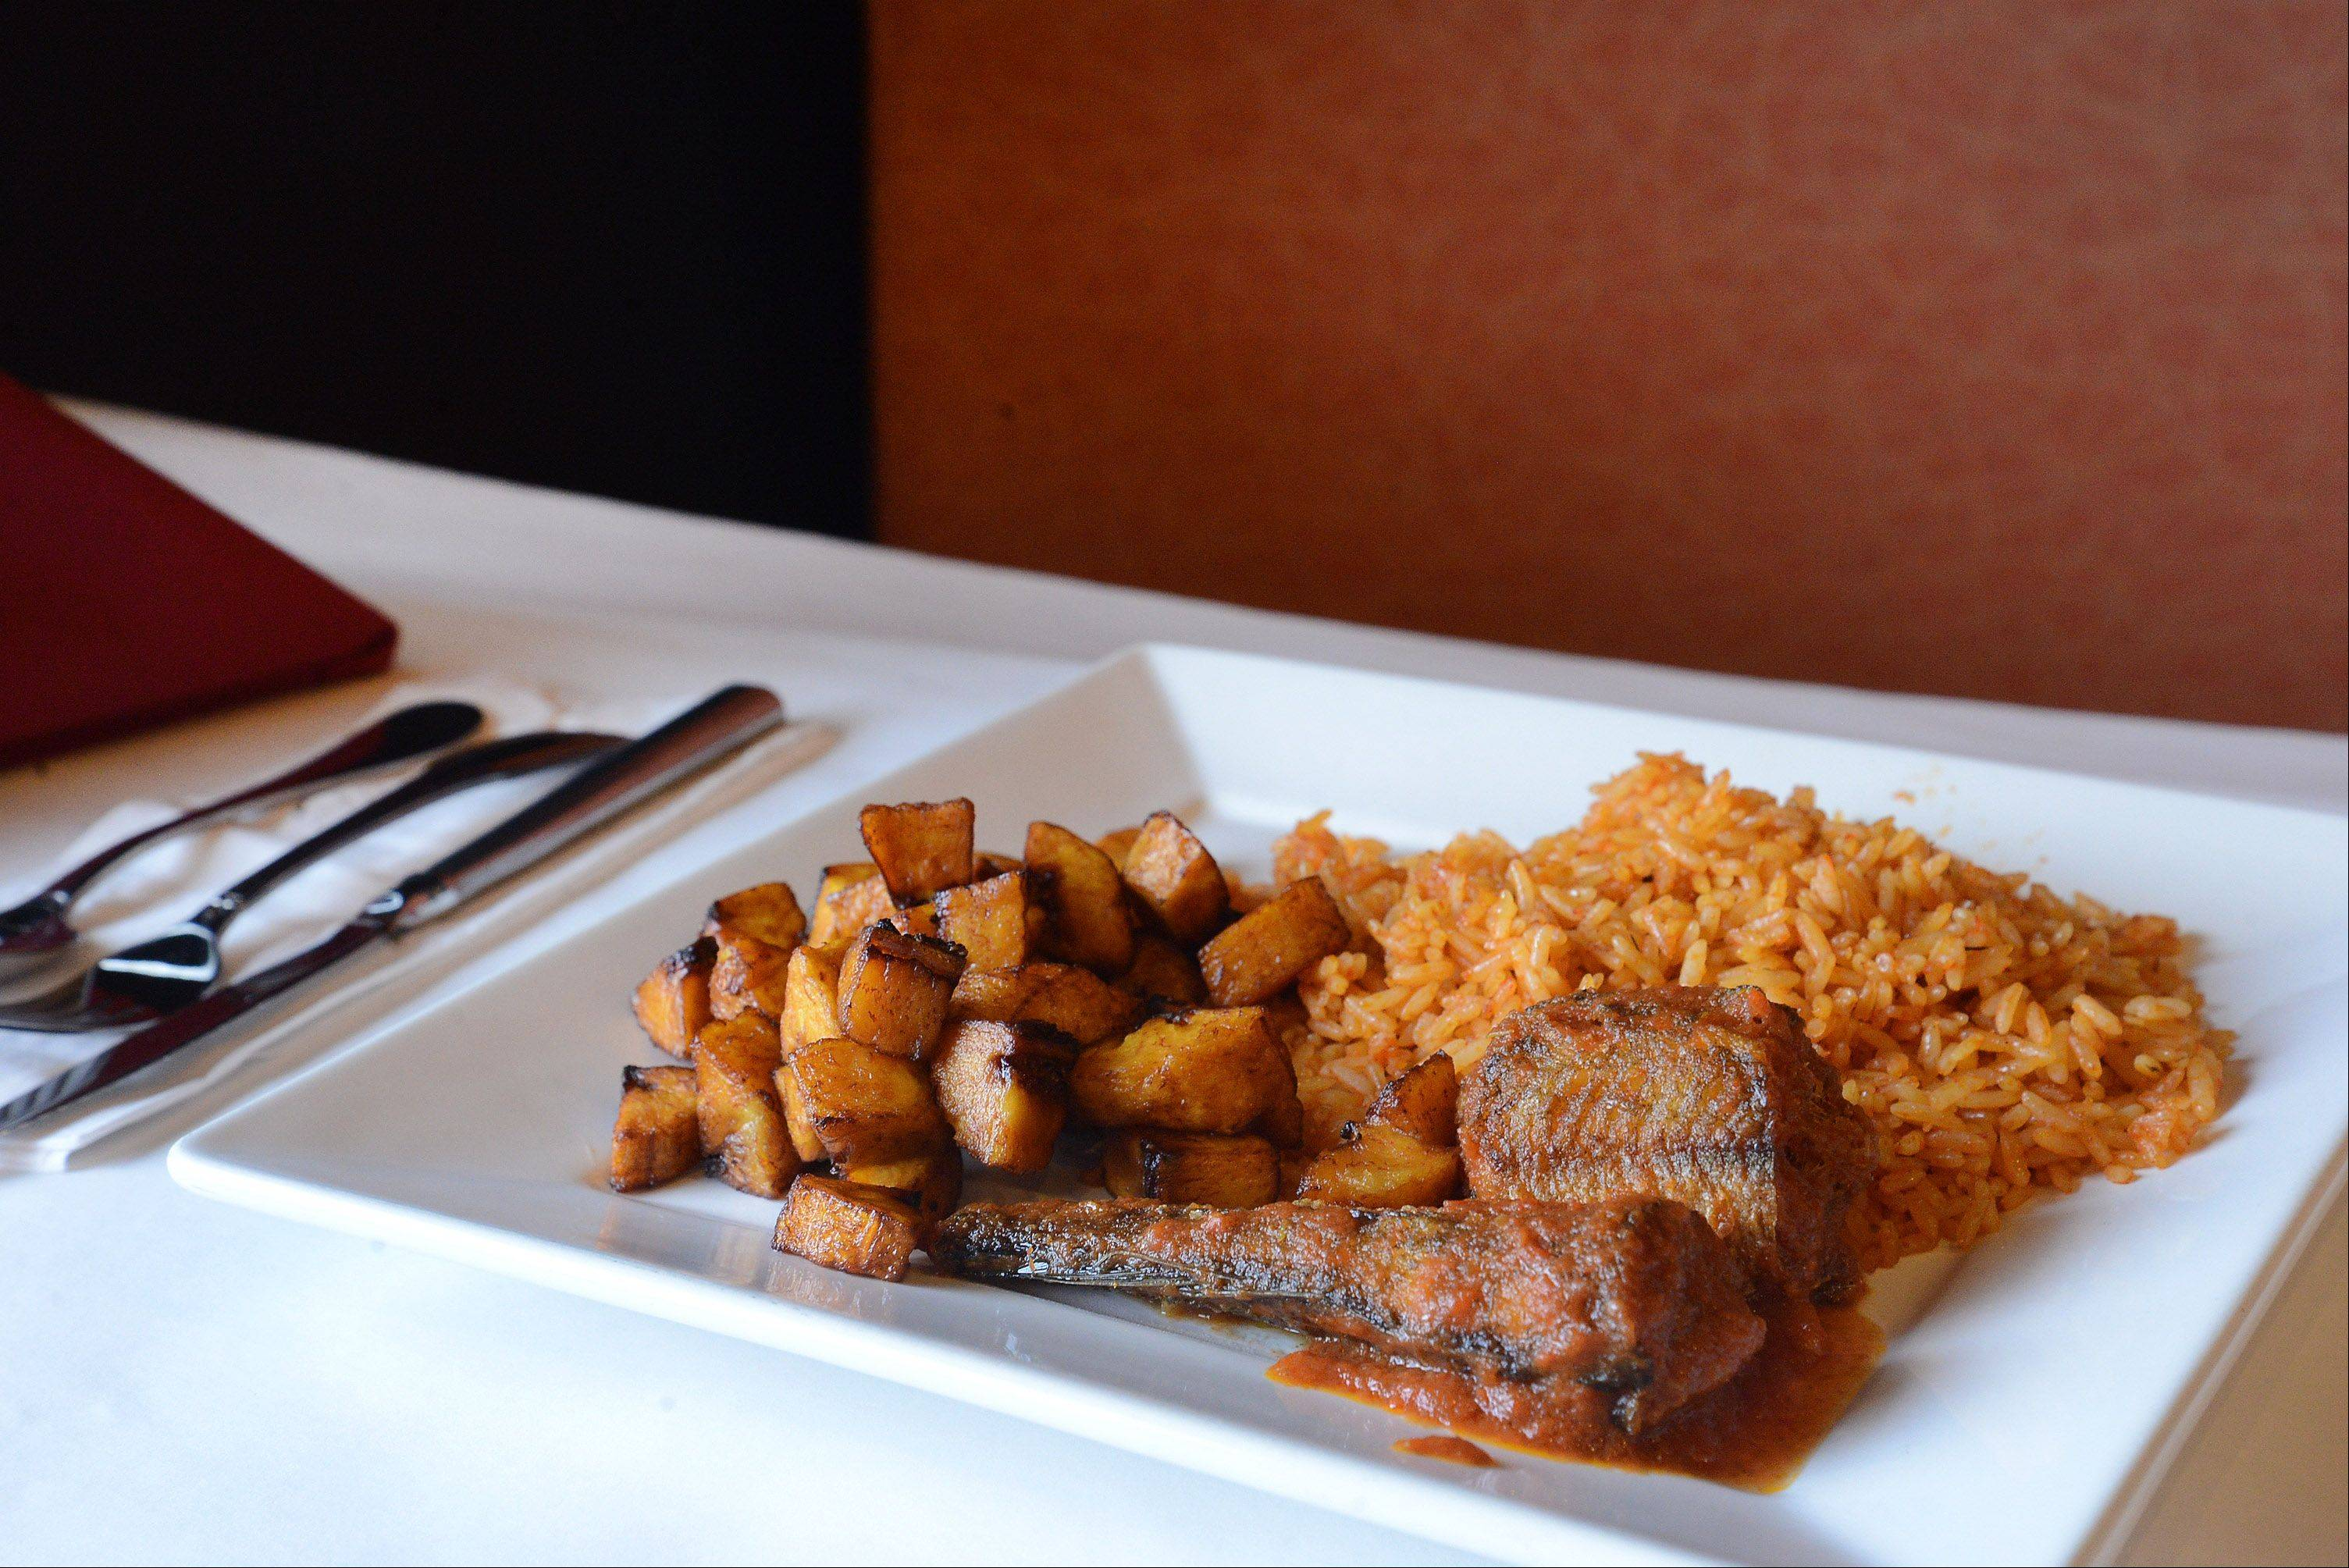 Jallof rice comes with a side of plantains at Bisi African Restaurant in Schaumburg.